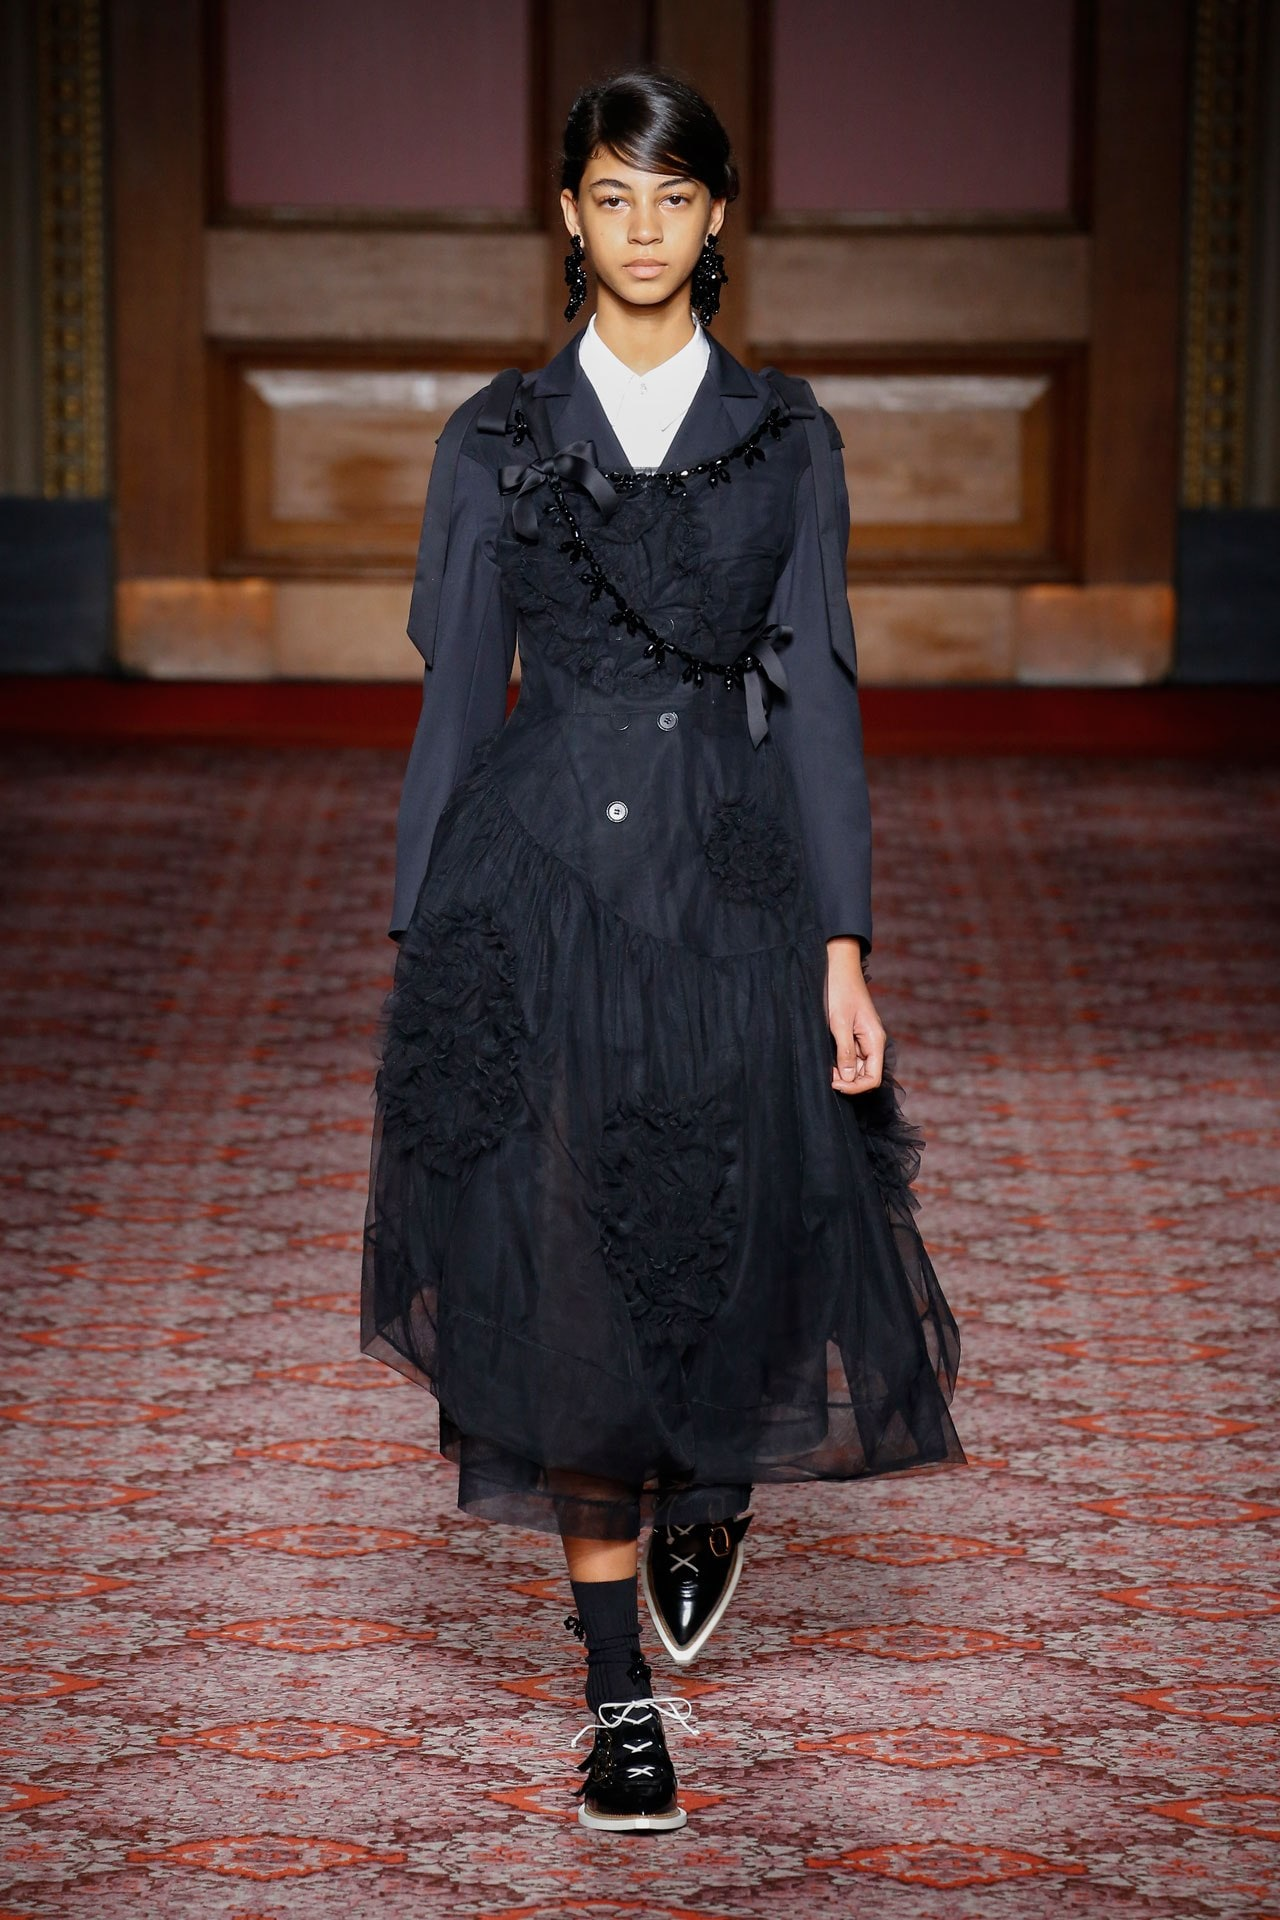 Simone Rocha ready-to-wear autumn/winter '18/'19